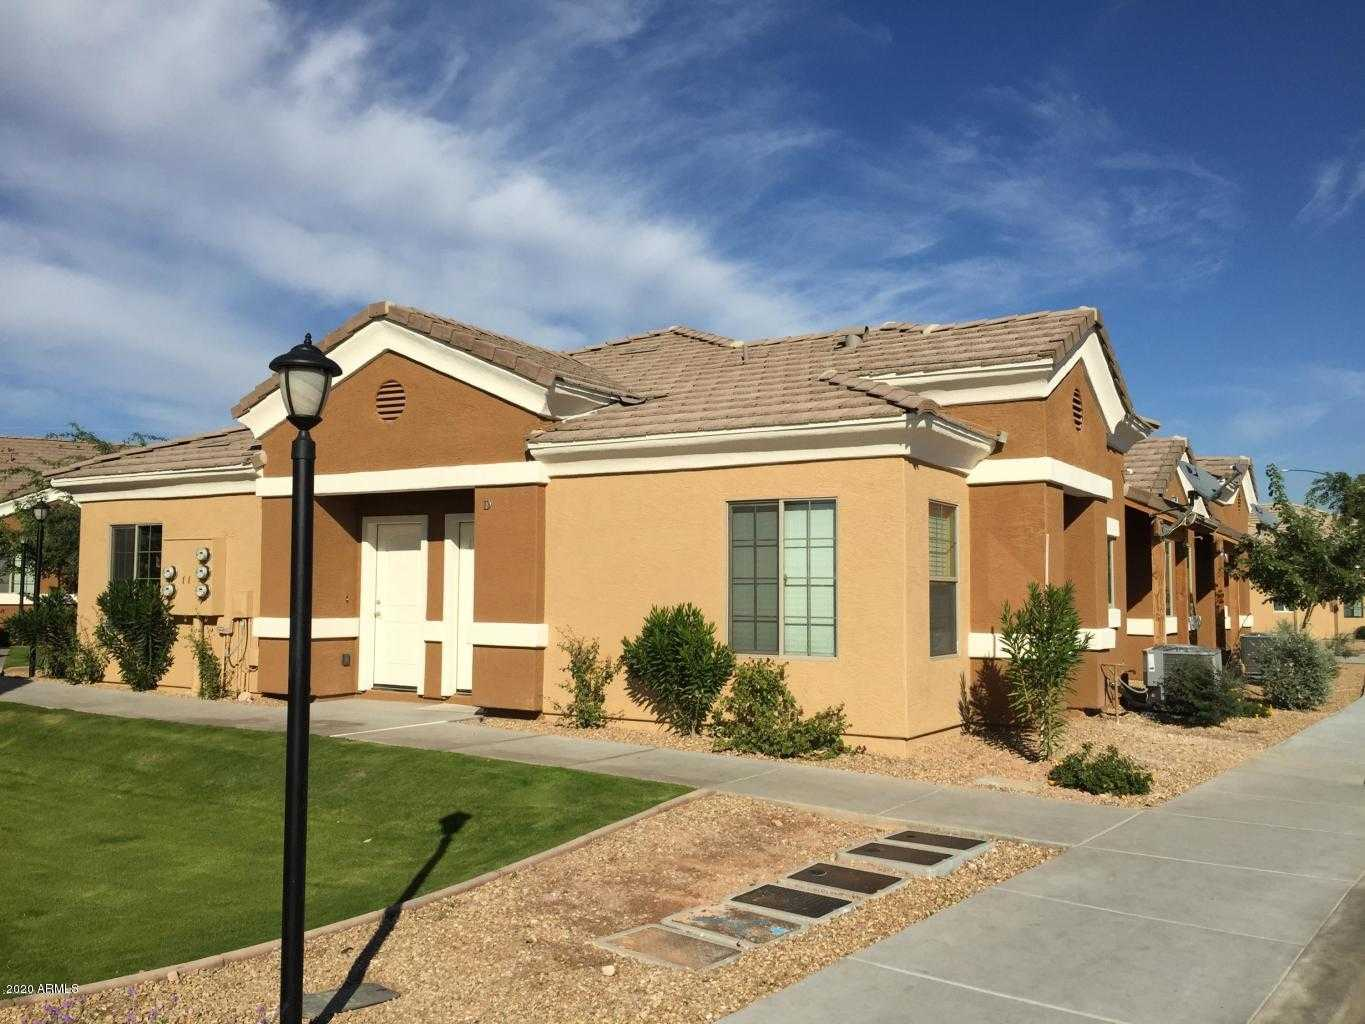 $182,500 - 3Br/2Ba -  for Sale in The Haystacks, Apache Junction